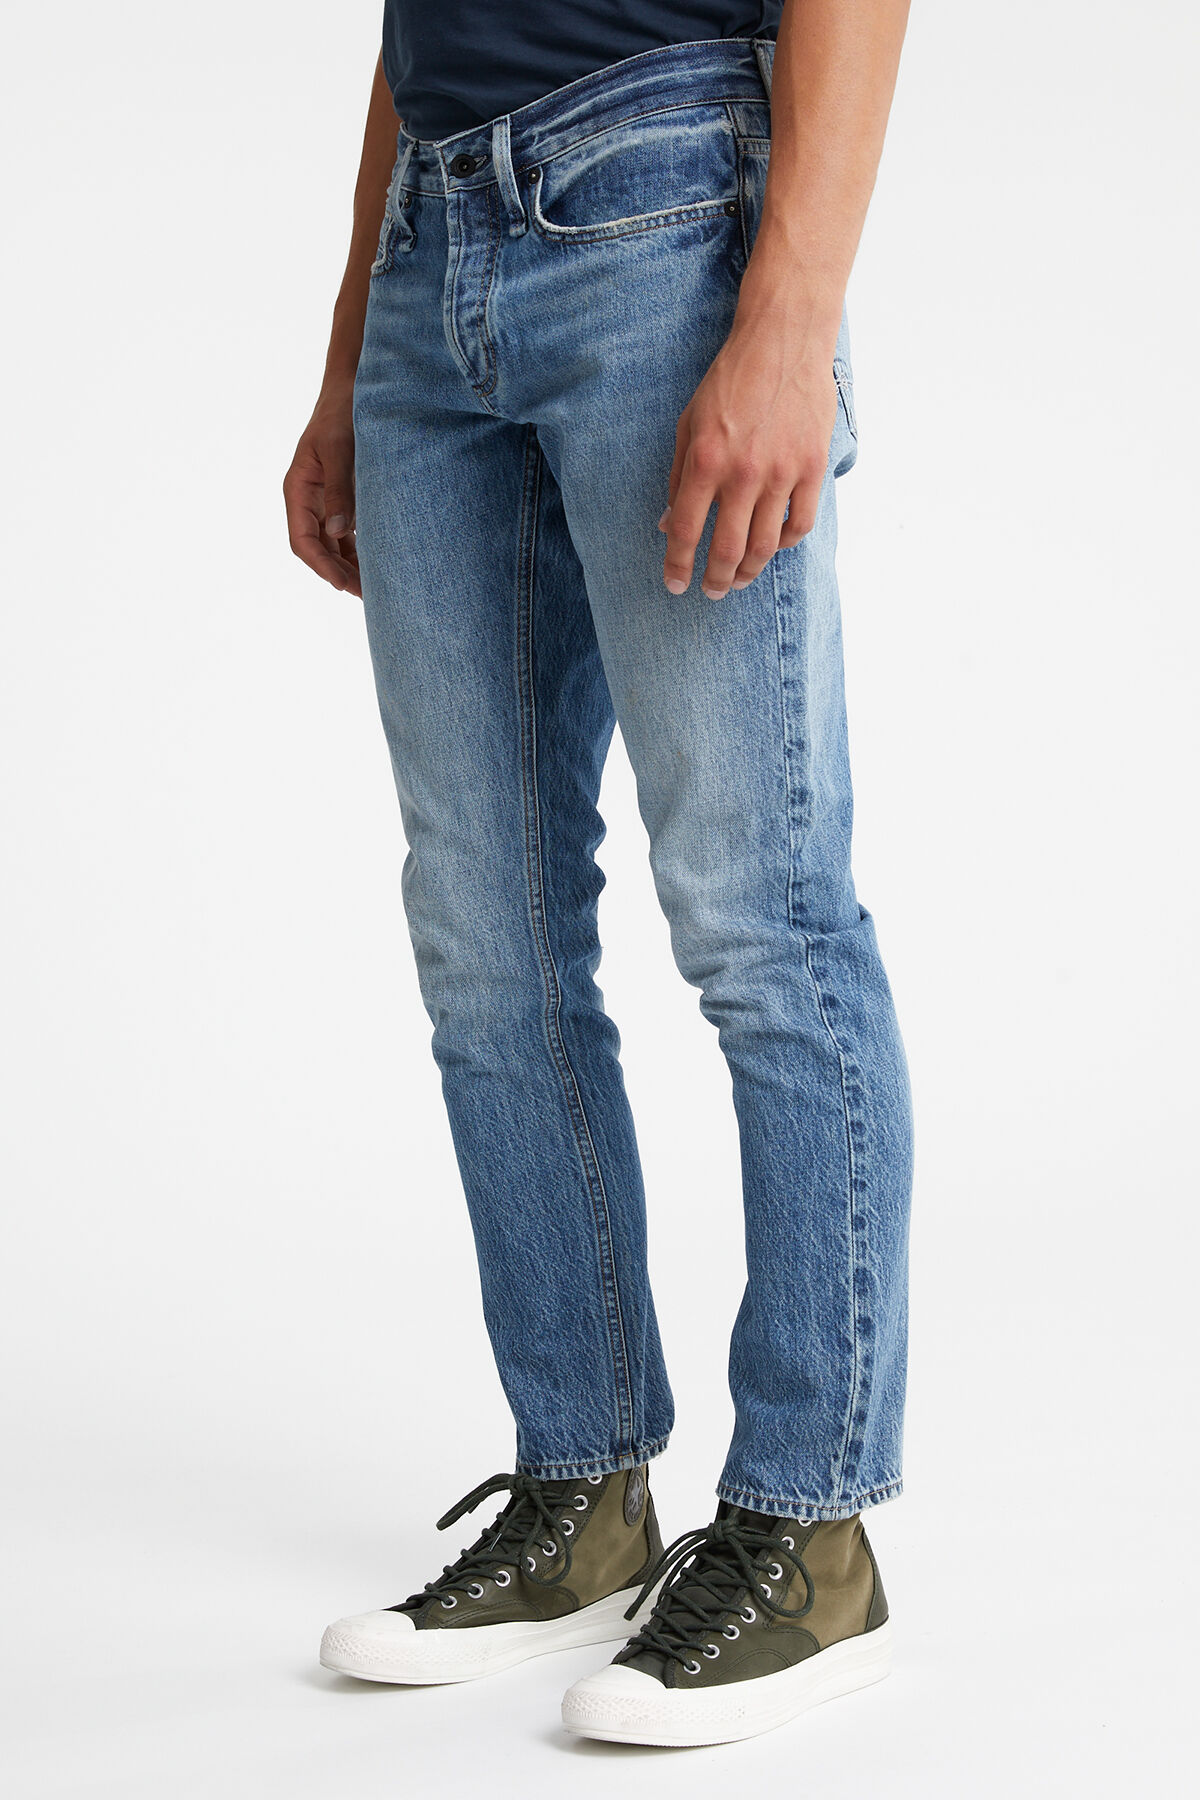 HAMMER Classic Washed Indigo Denim - Athletic Fit